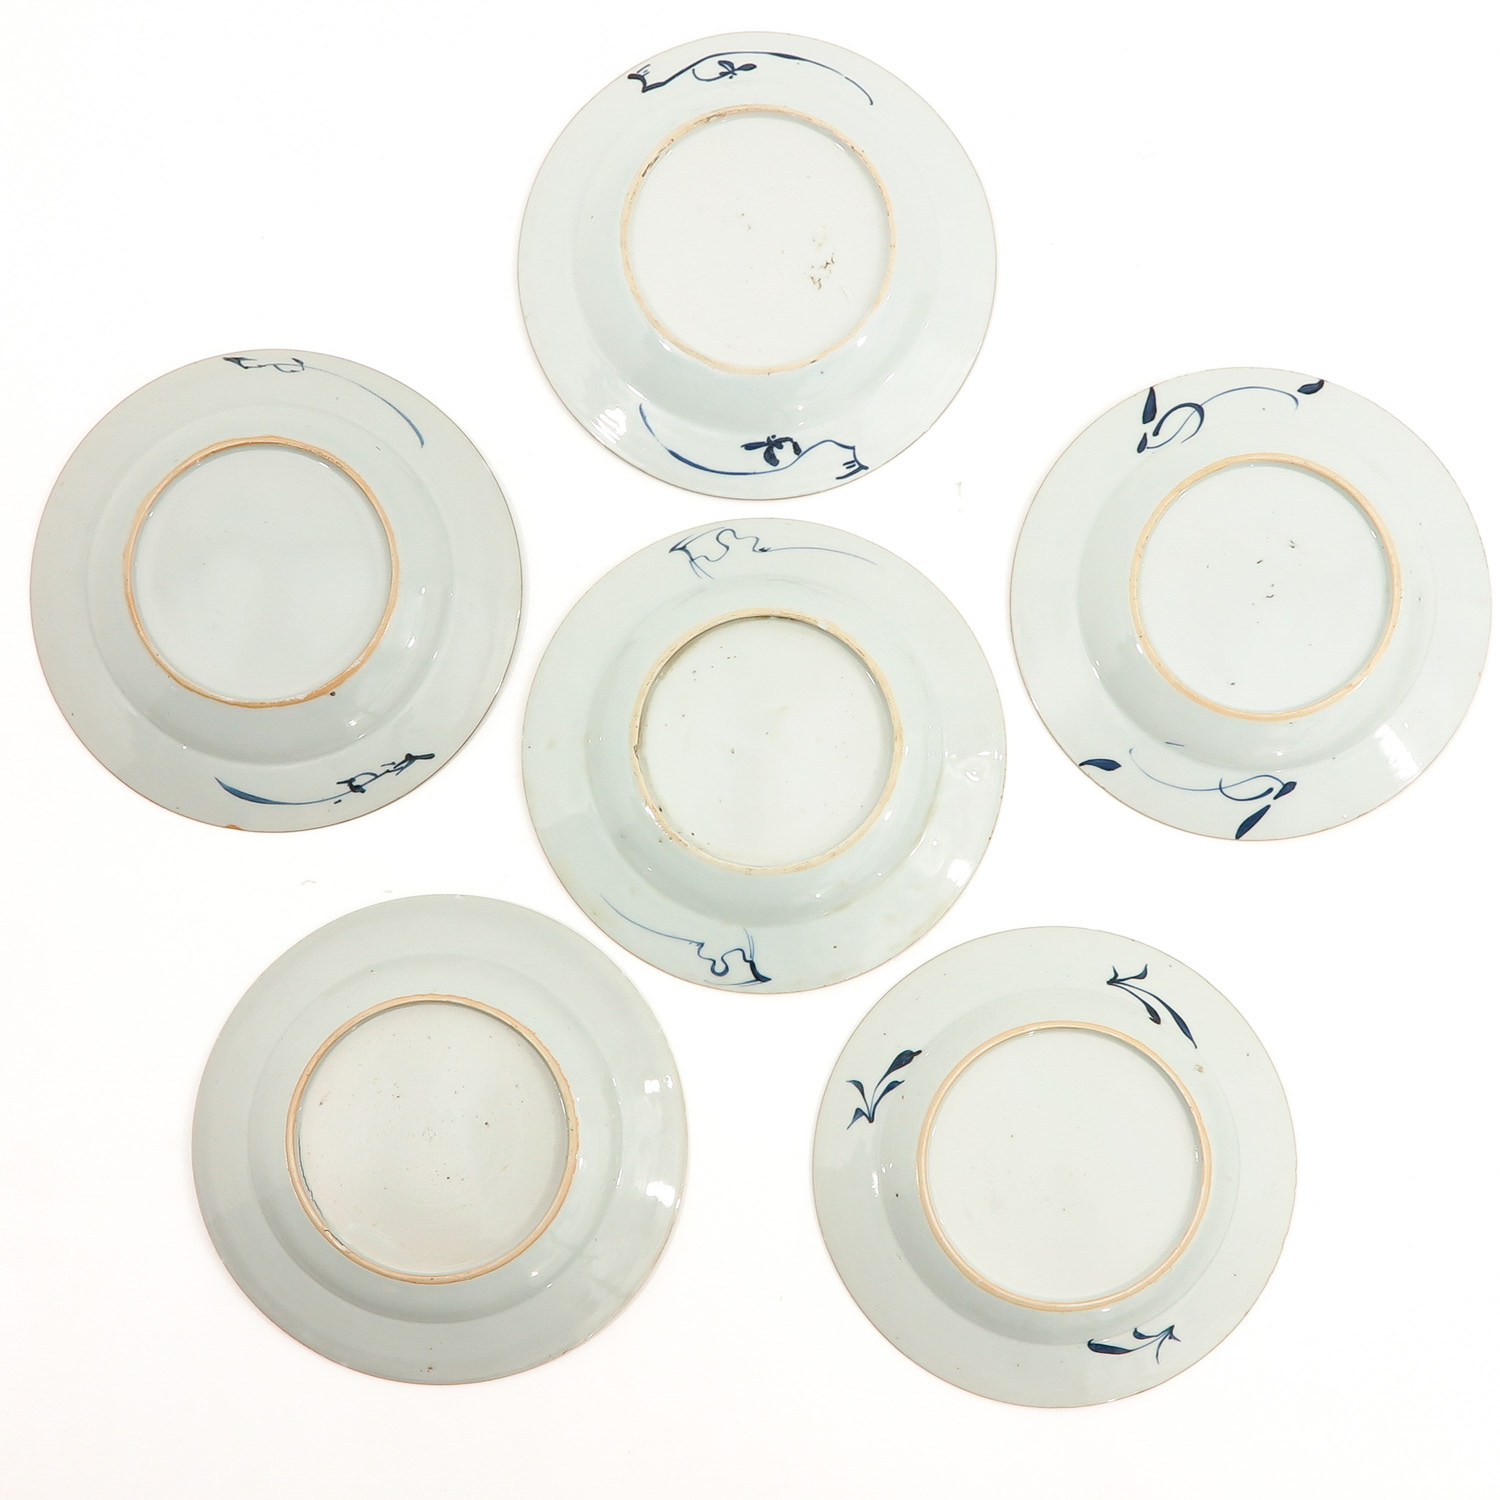 A Series of 6 Blue and White Plates - Image 2 of 10